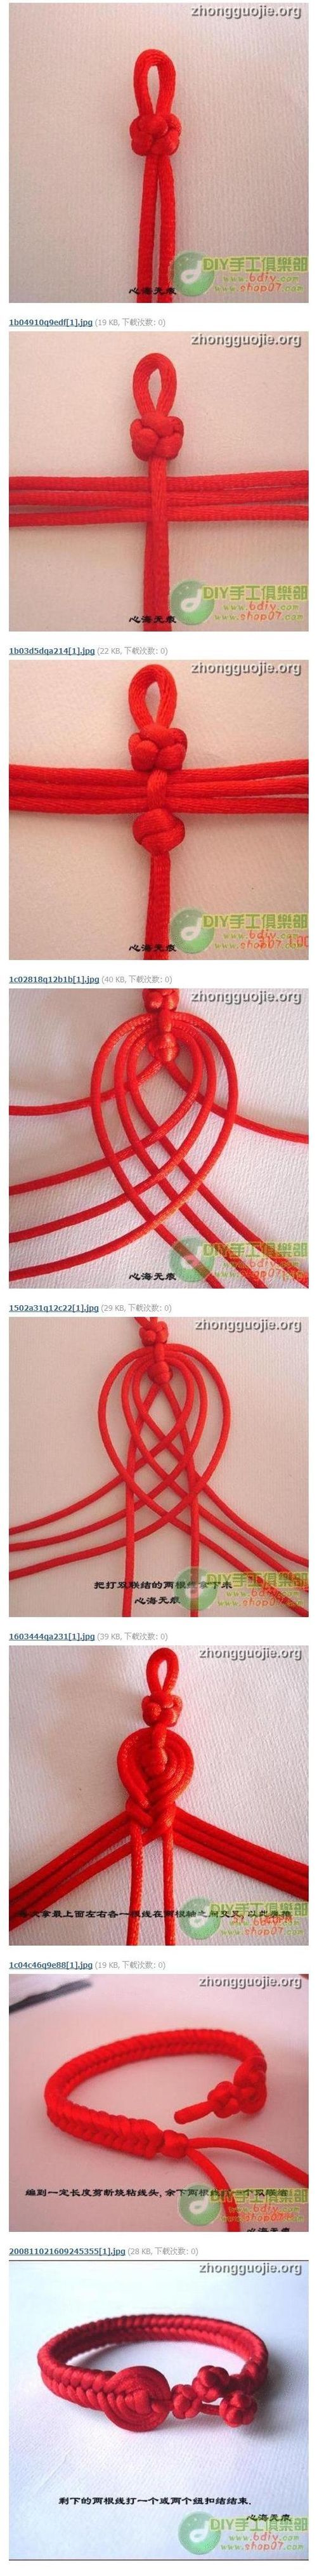 DIY Lucky Knot Bracelet DIY Projects / UsefulDIY.com on imgfave